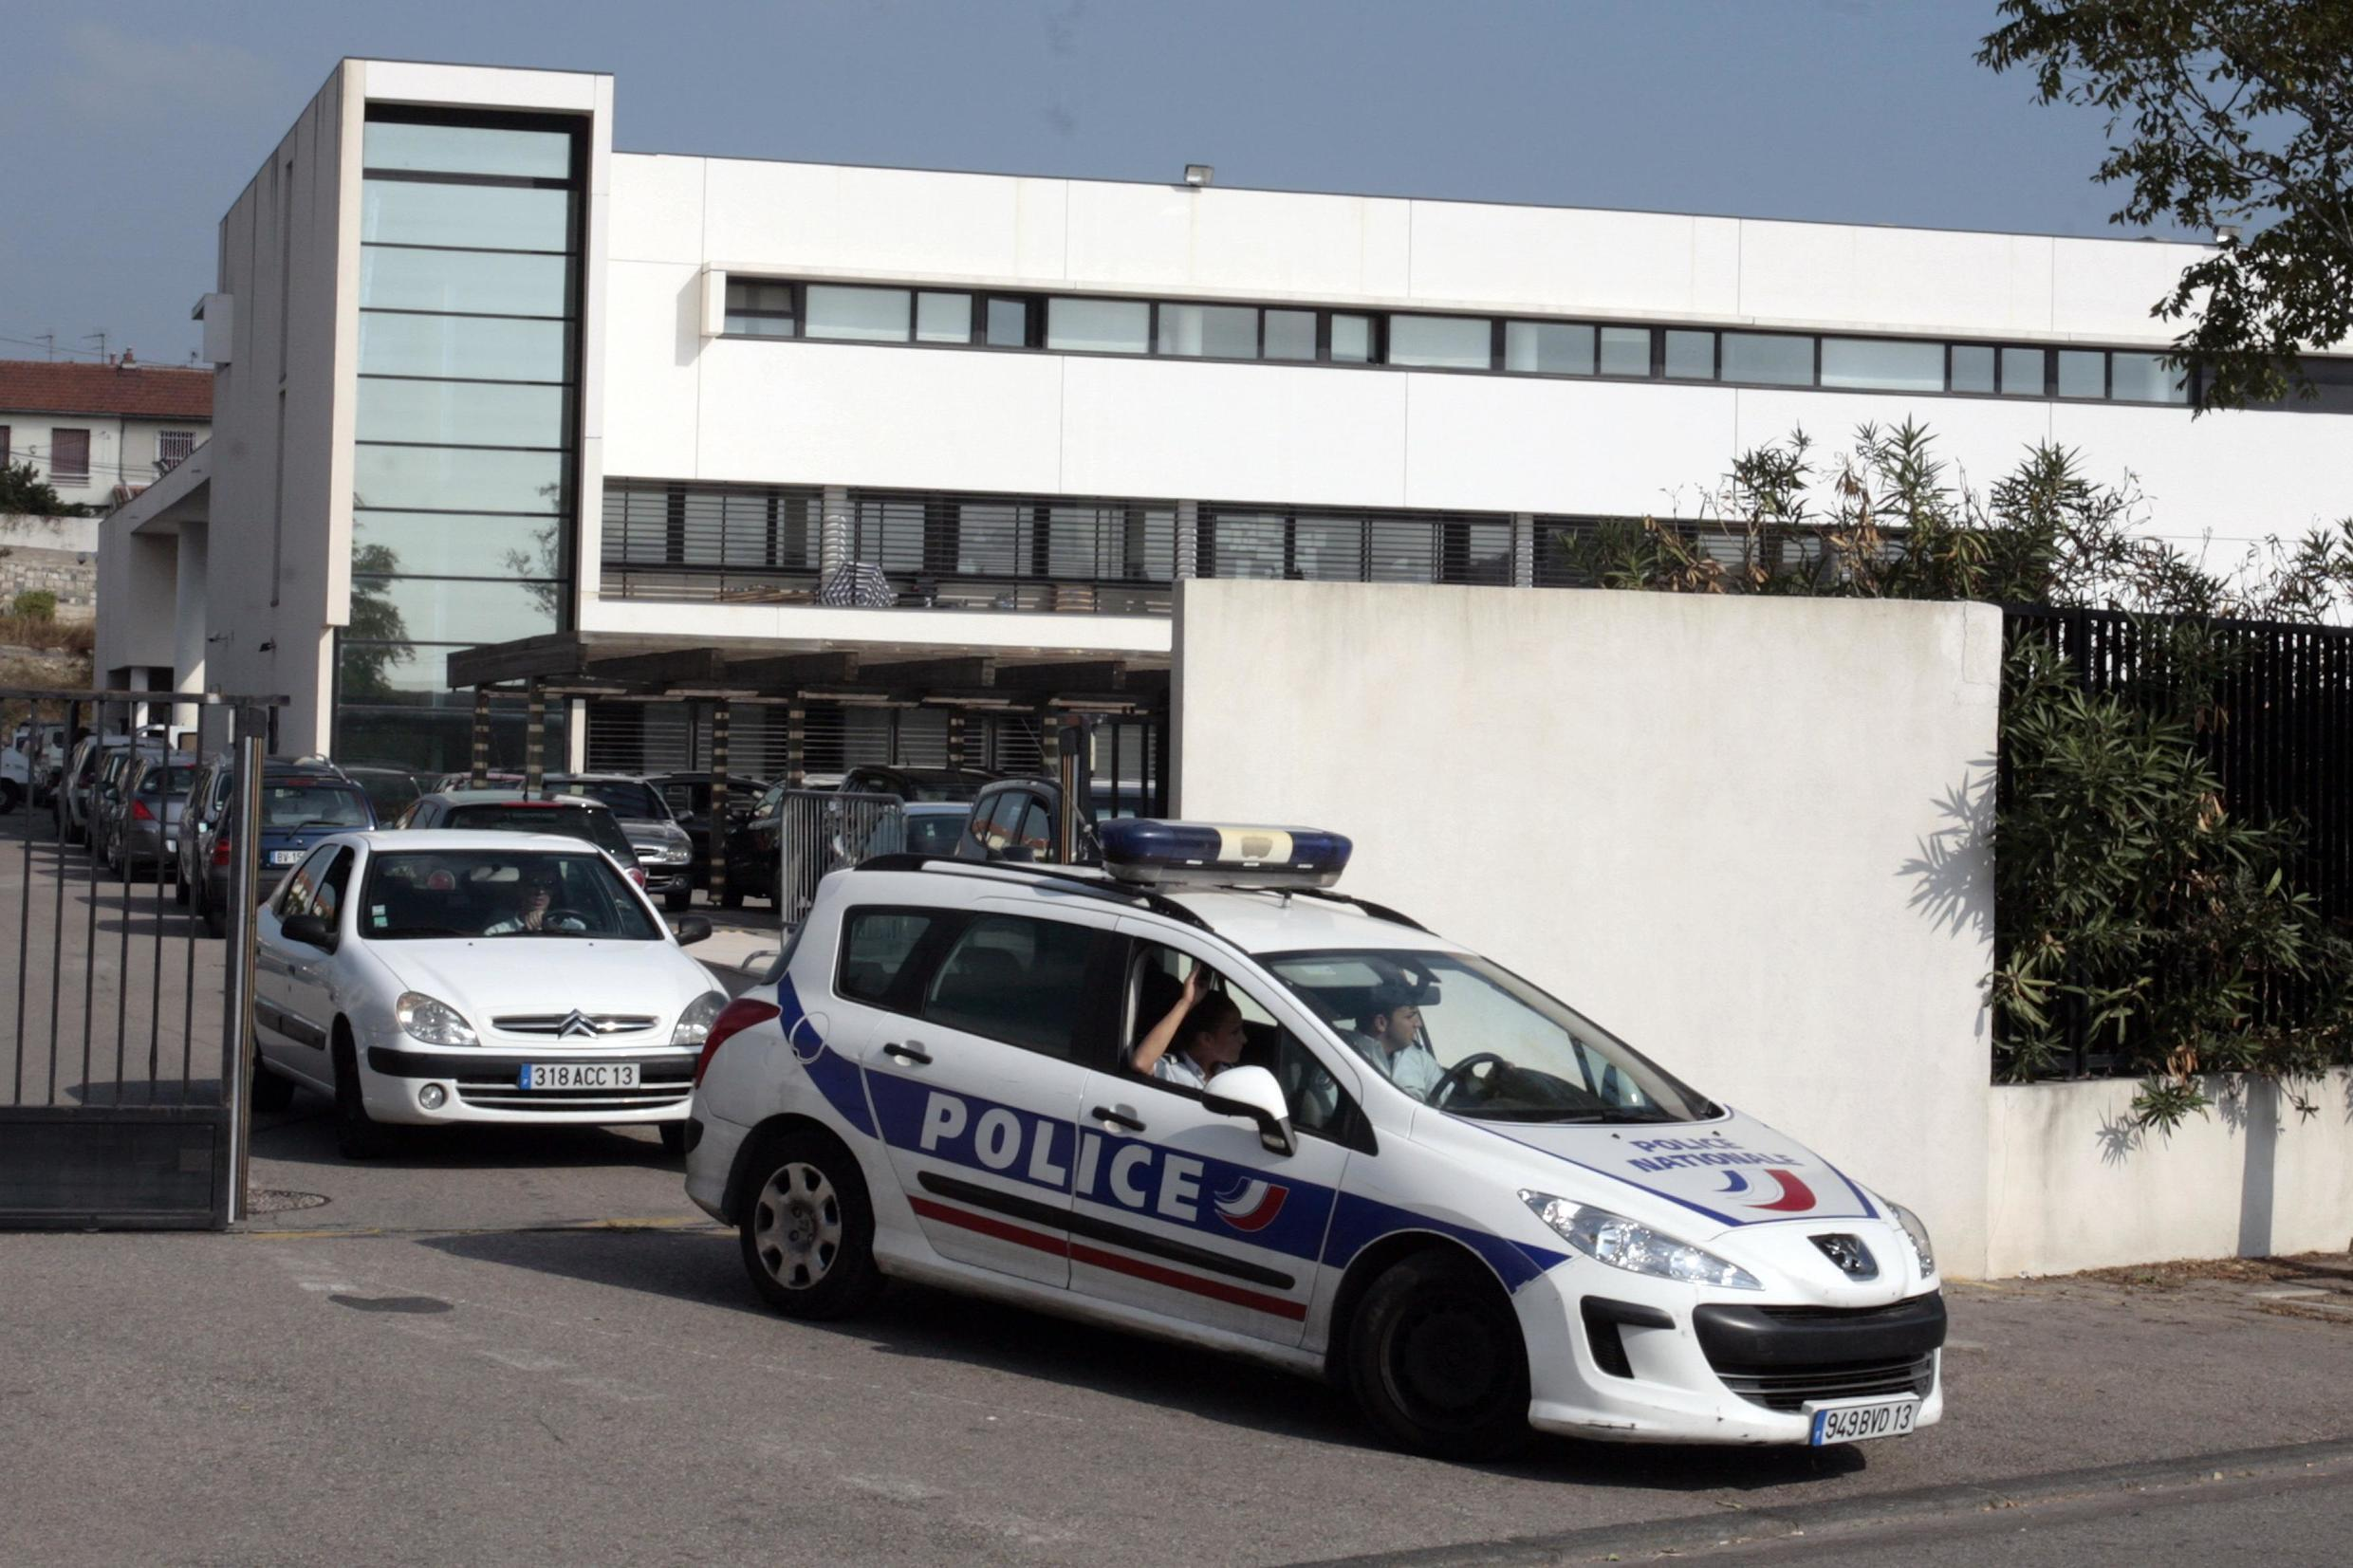 Police cars in Marseille